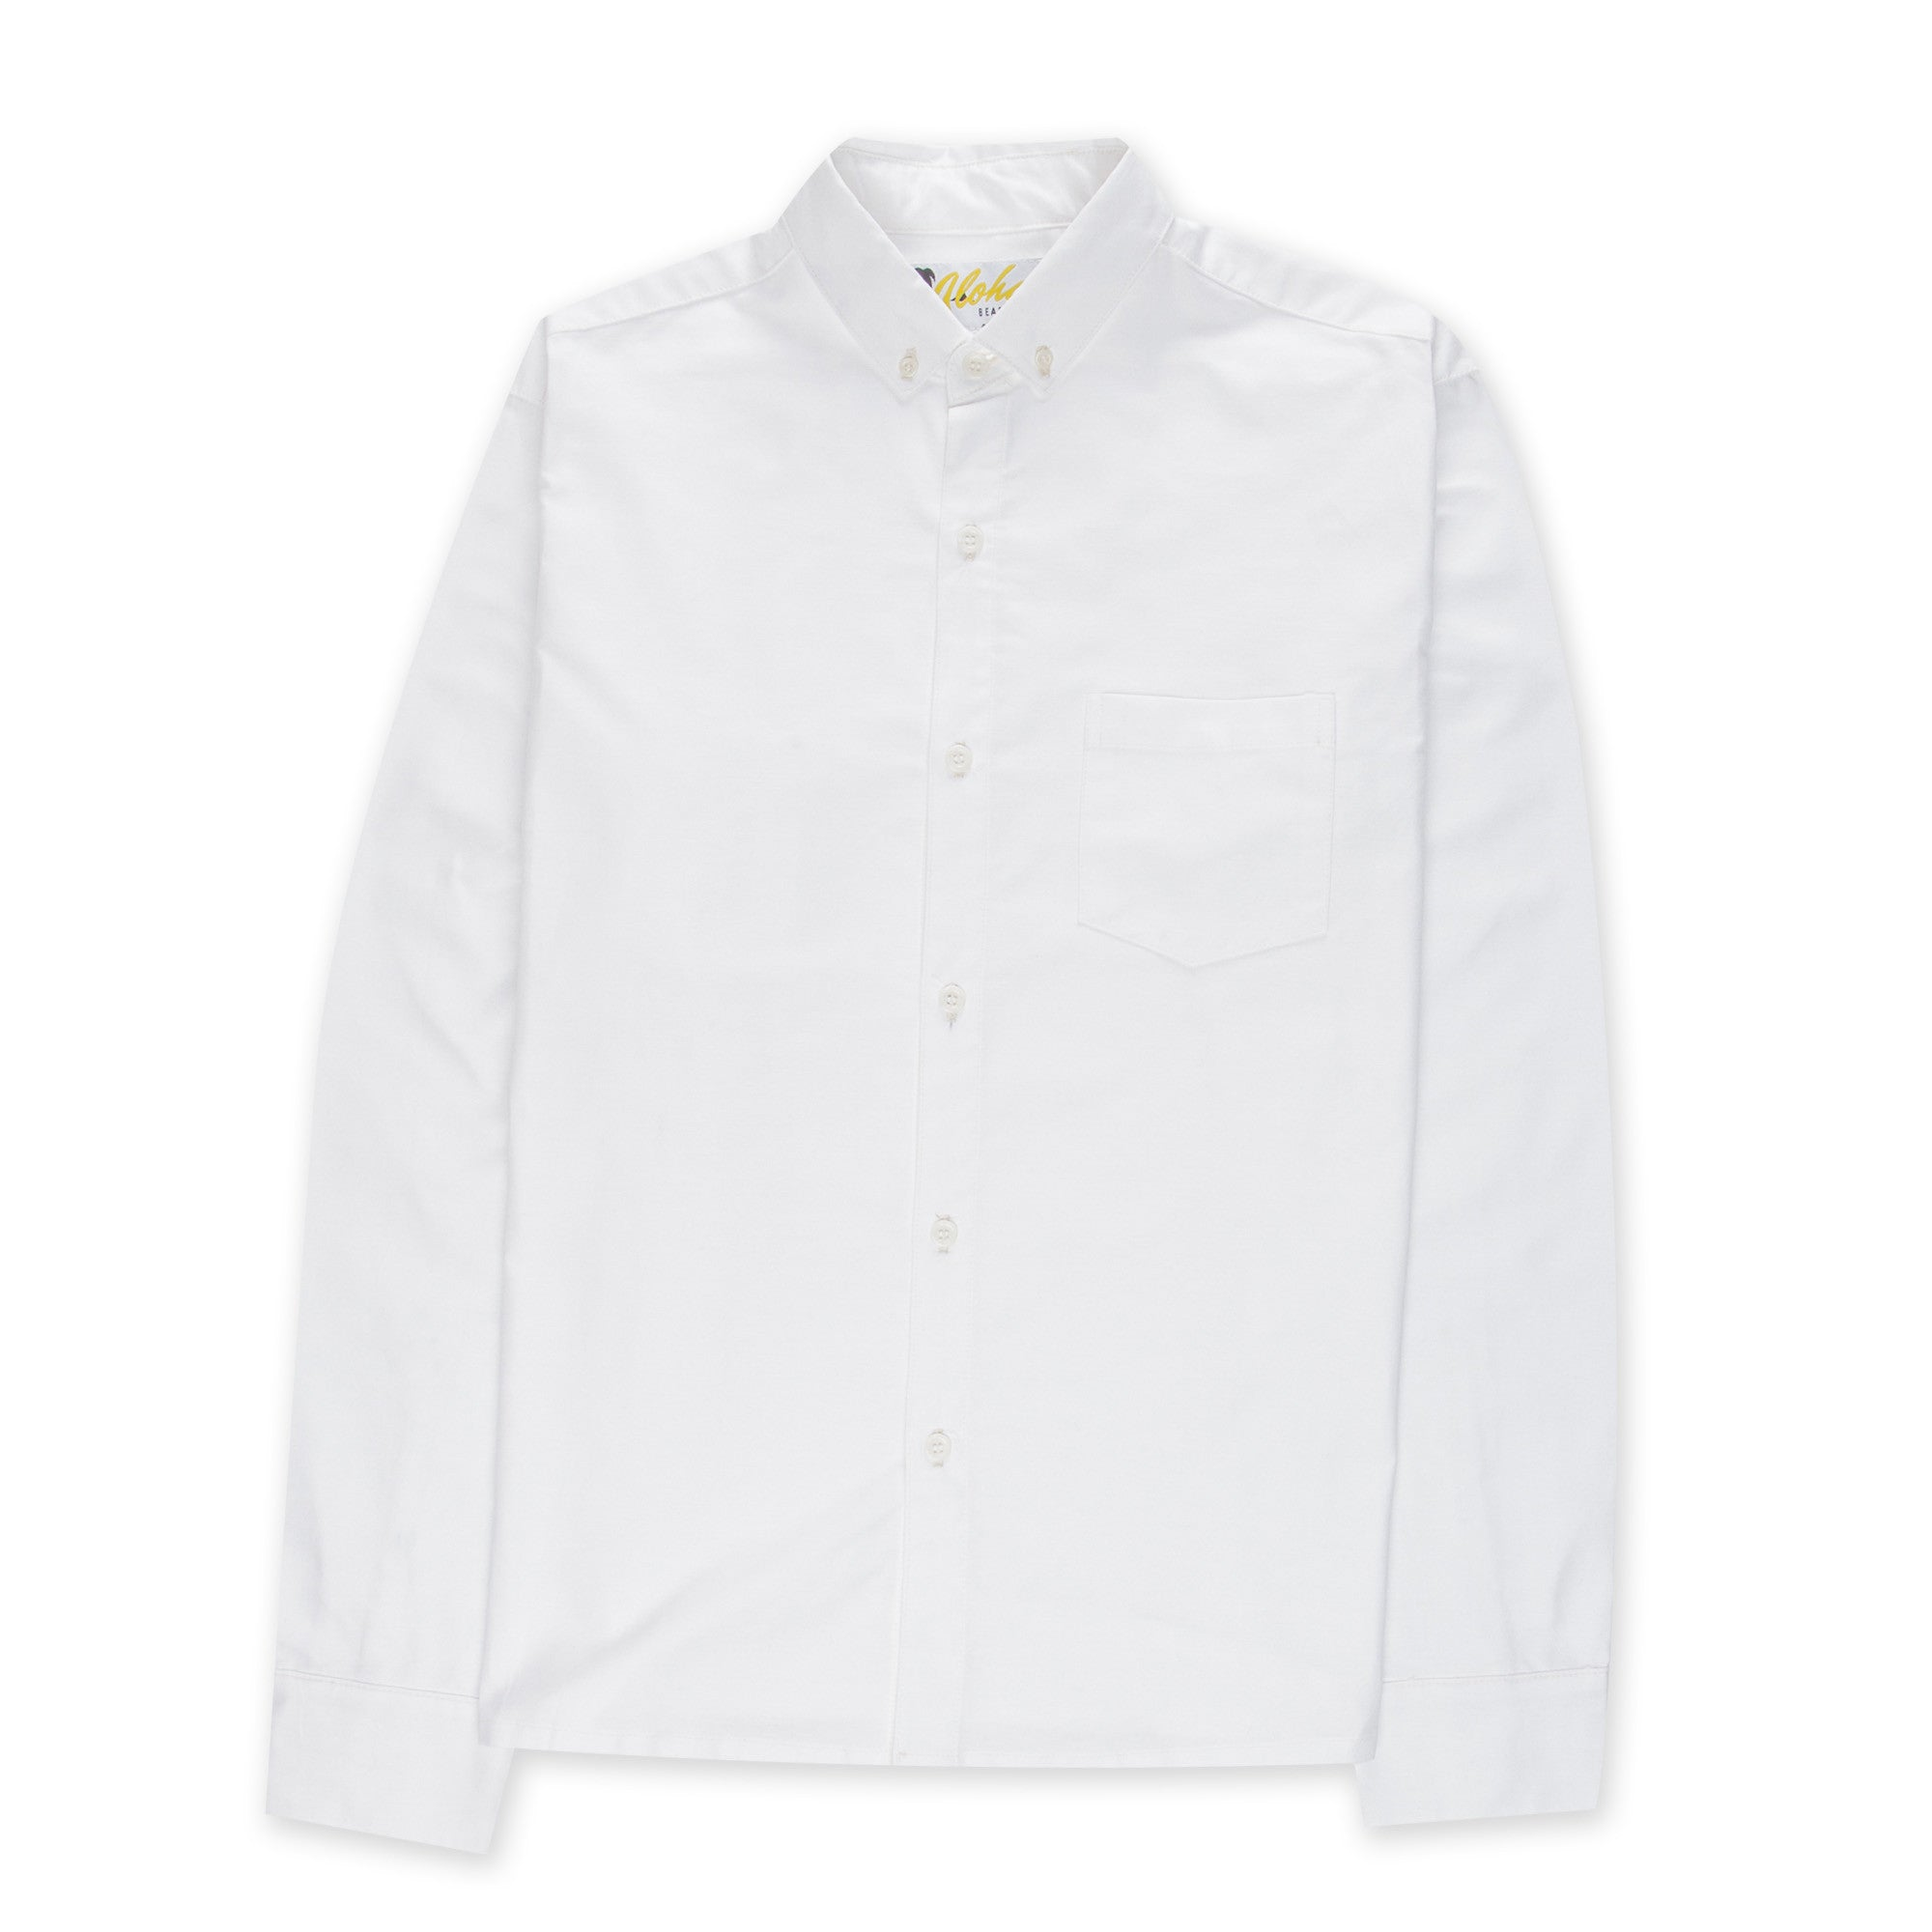 Aloha Beach Club - Chapman Natural Long Sleeved Oxford - Aloha Beach Club